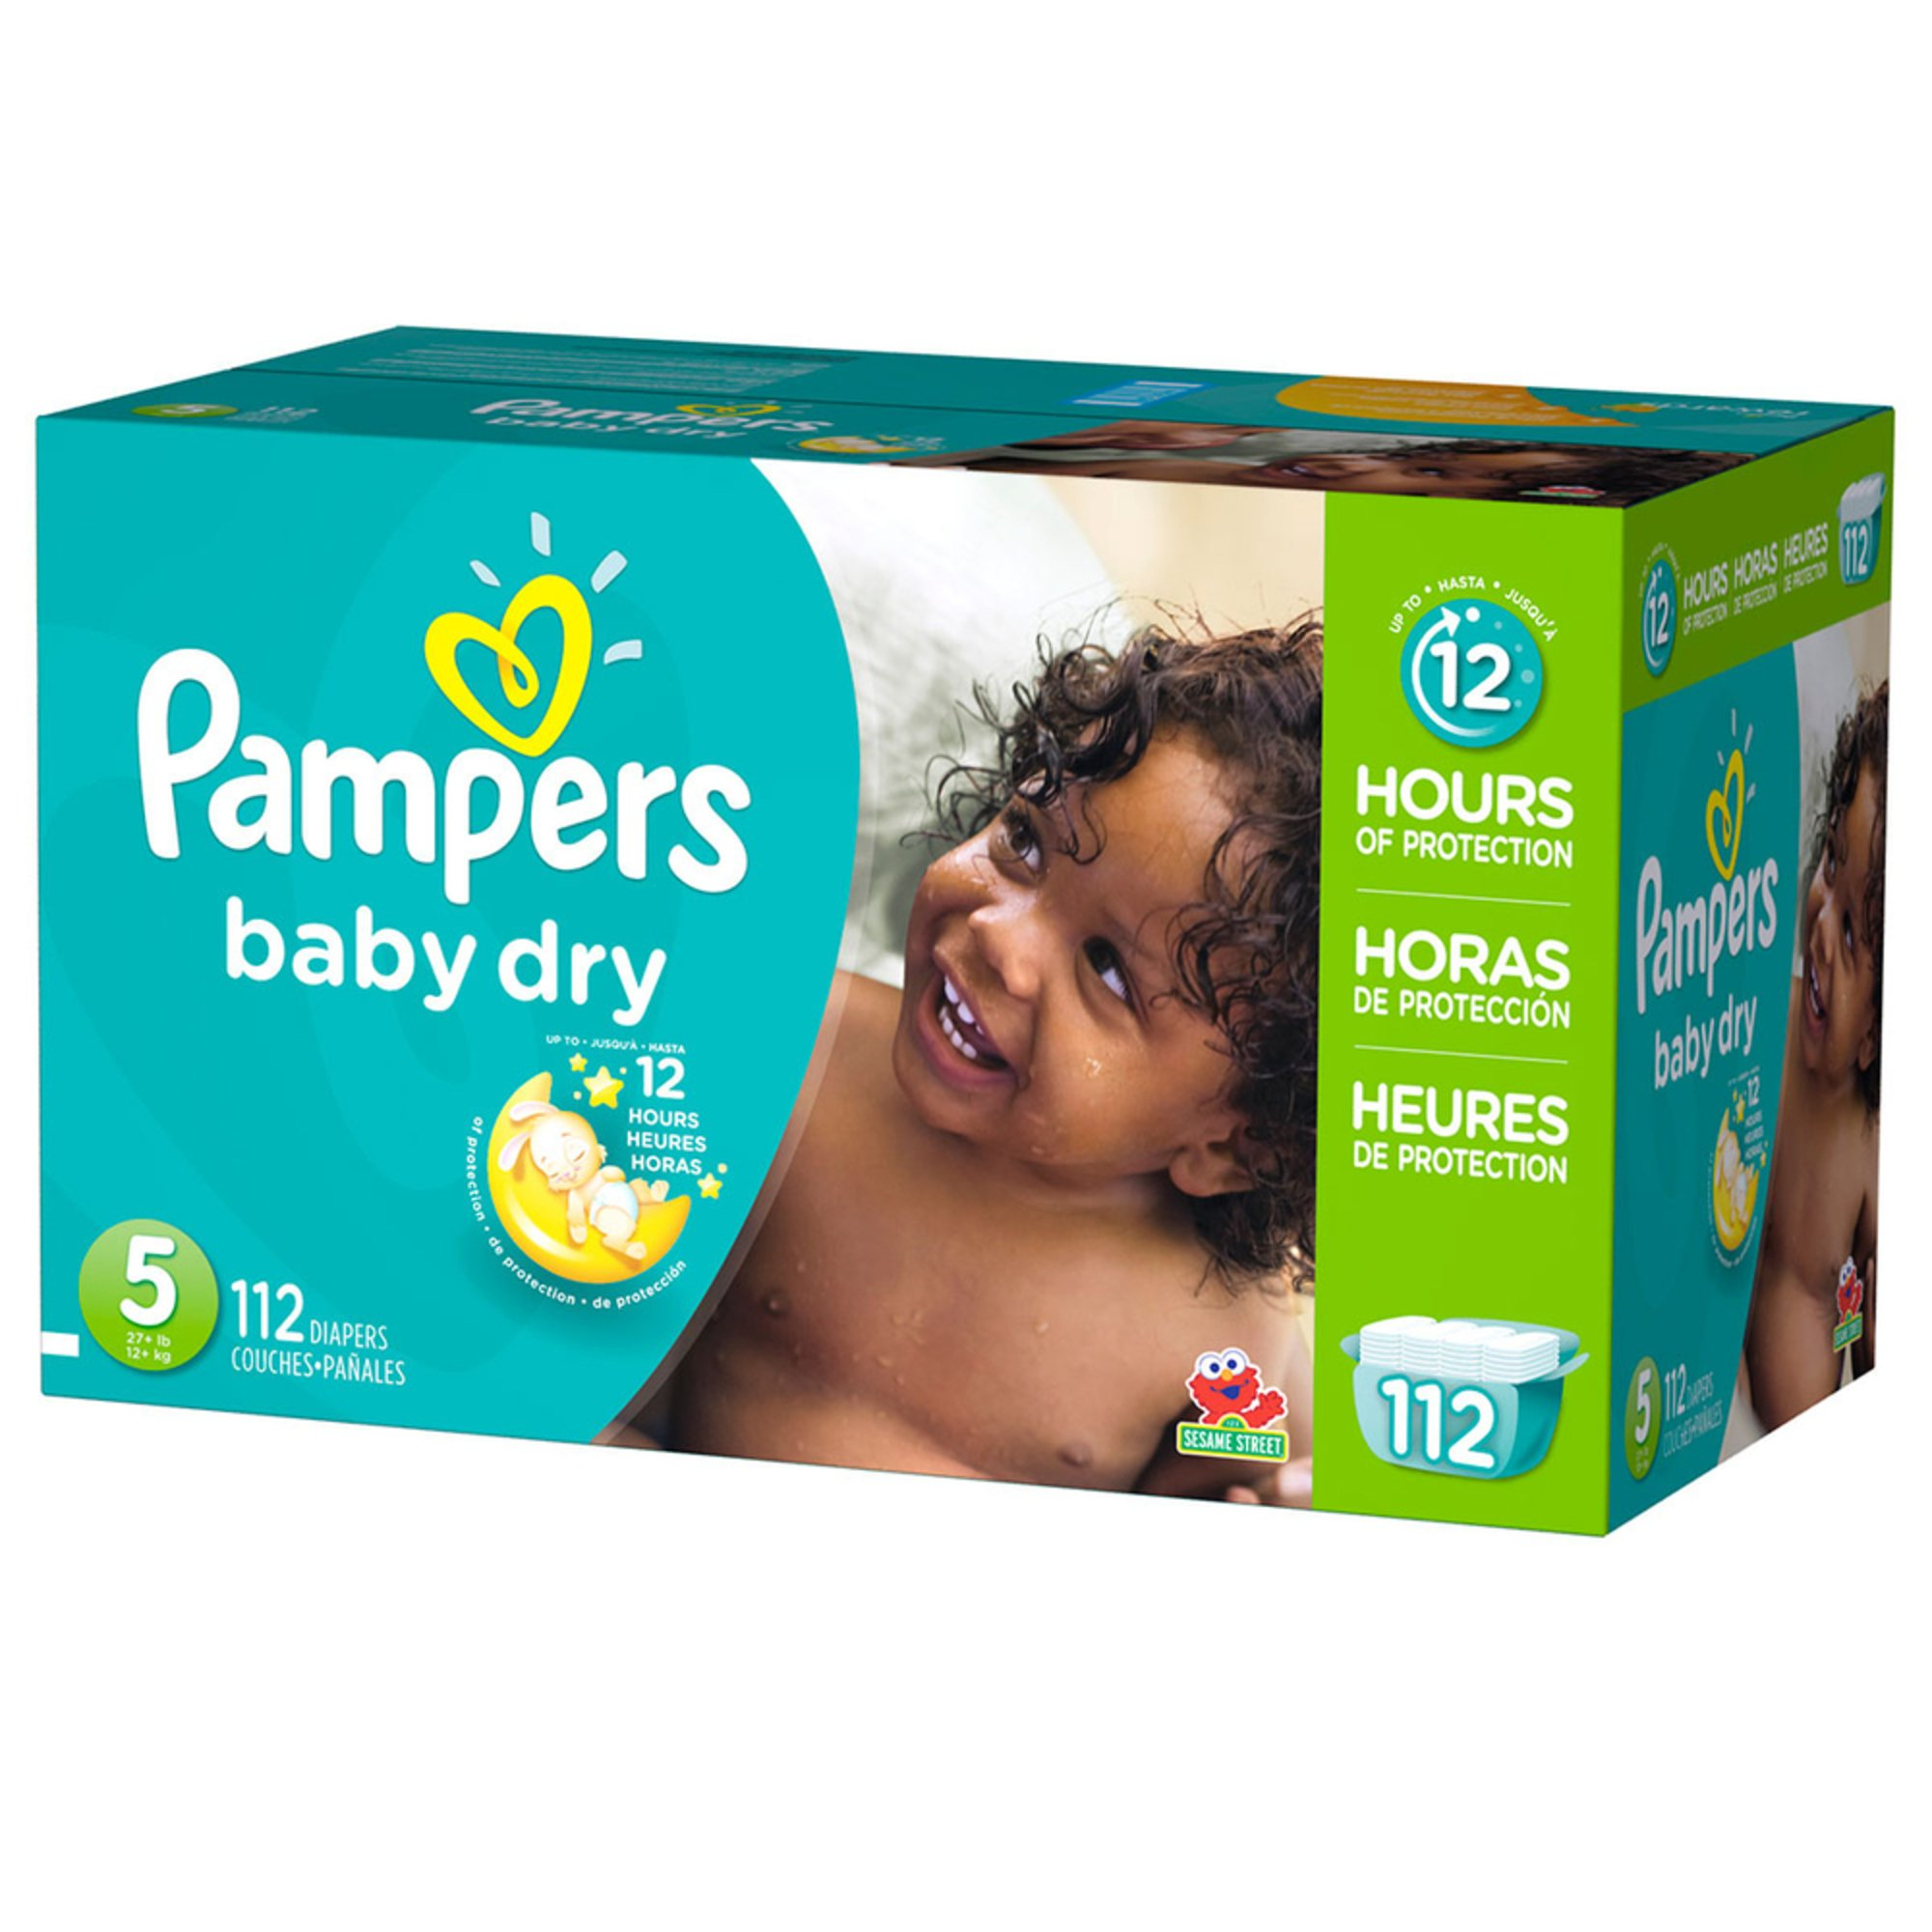 15 results for pampers baby dry diapers size 5 Save pampers baby dry diapers size 5 to get e-mail alerts and updates on your eBay Feed. Unfollow pampers baby dry diapers size 5 to stop getting updates on .